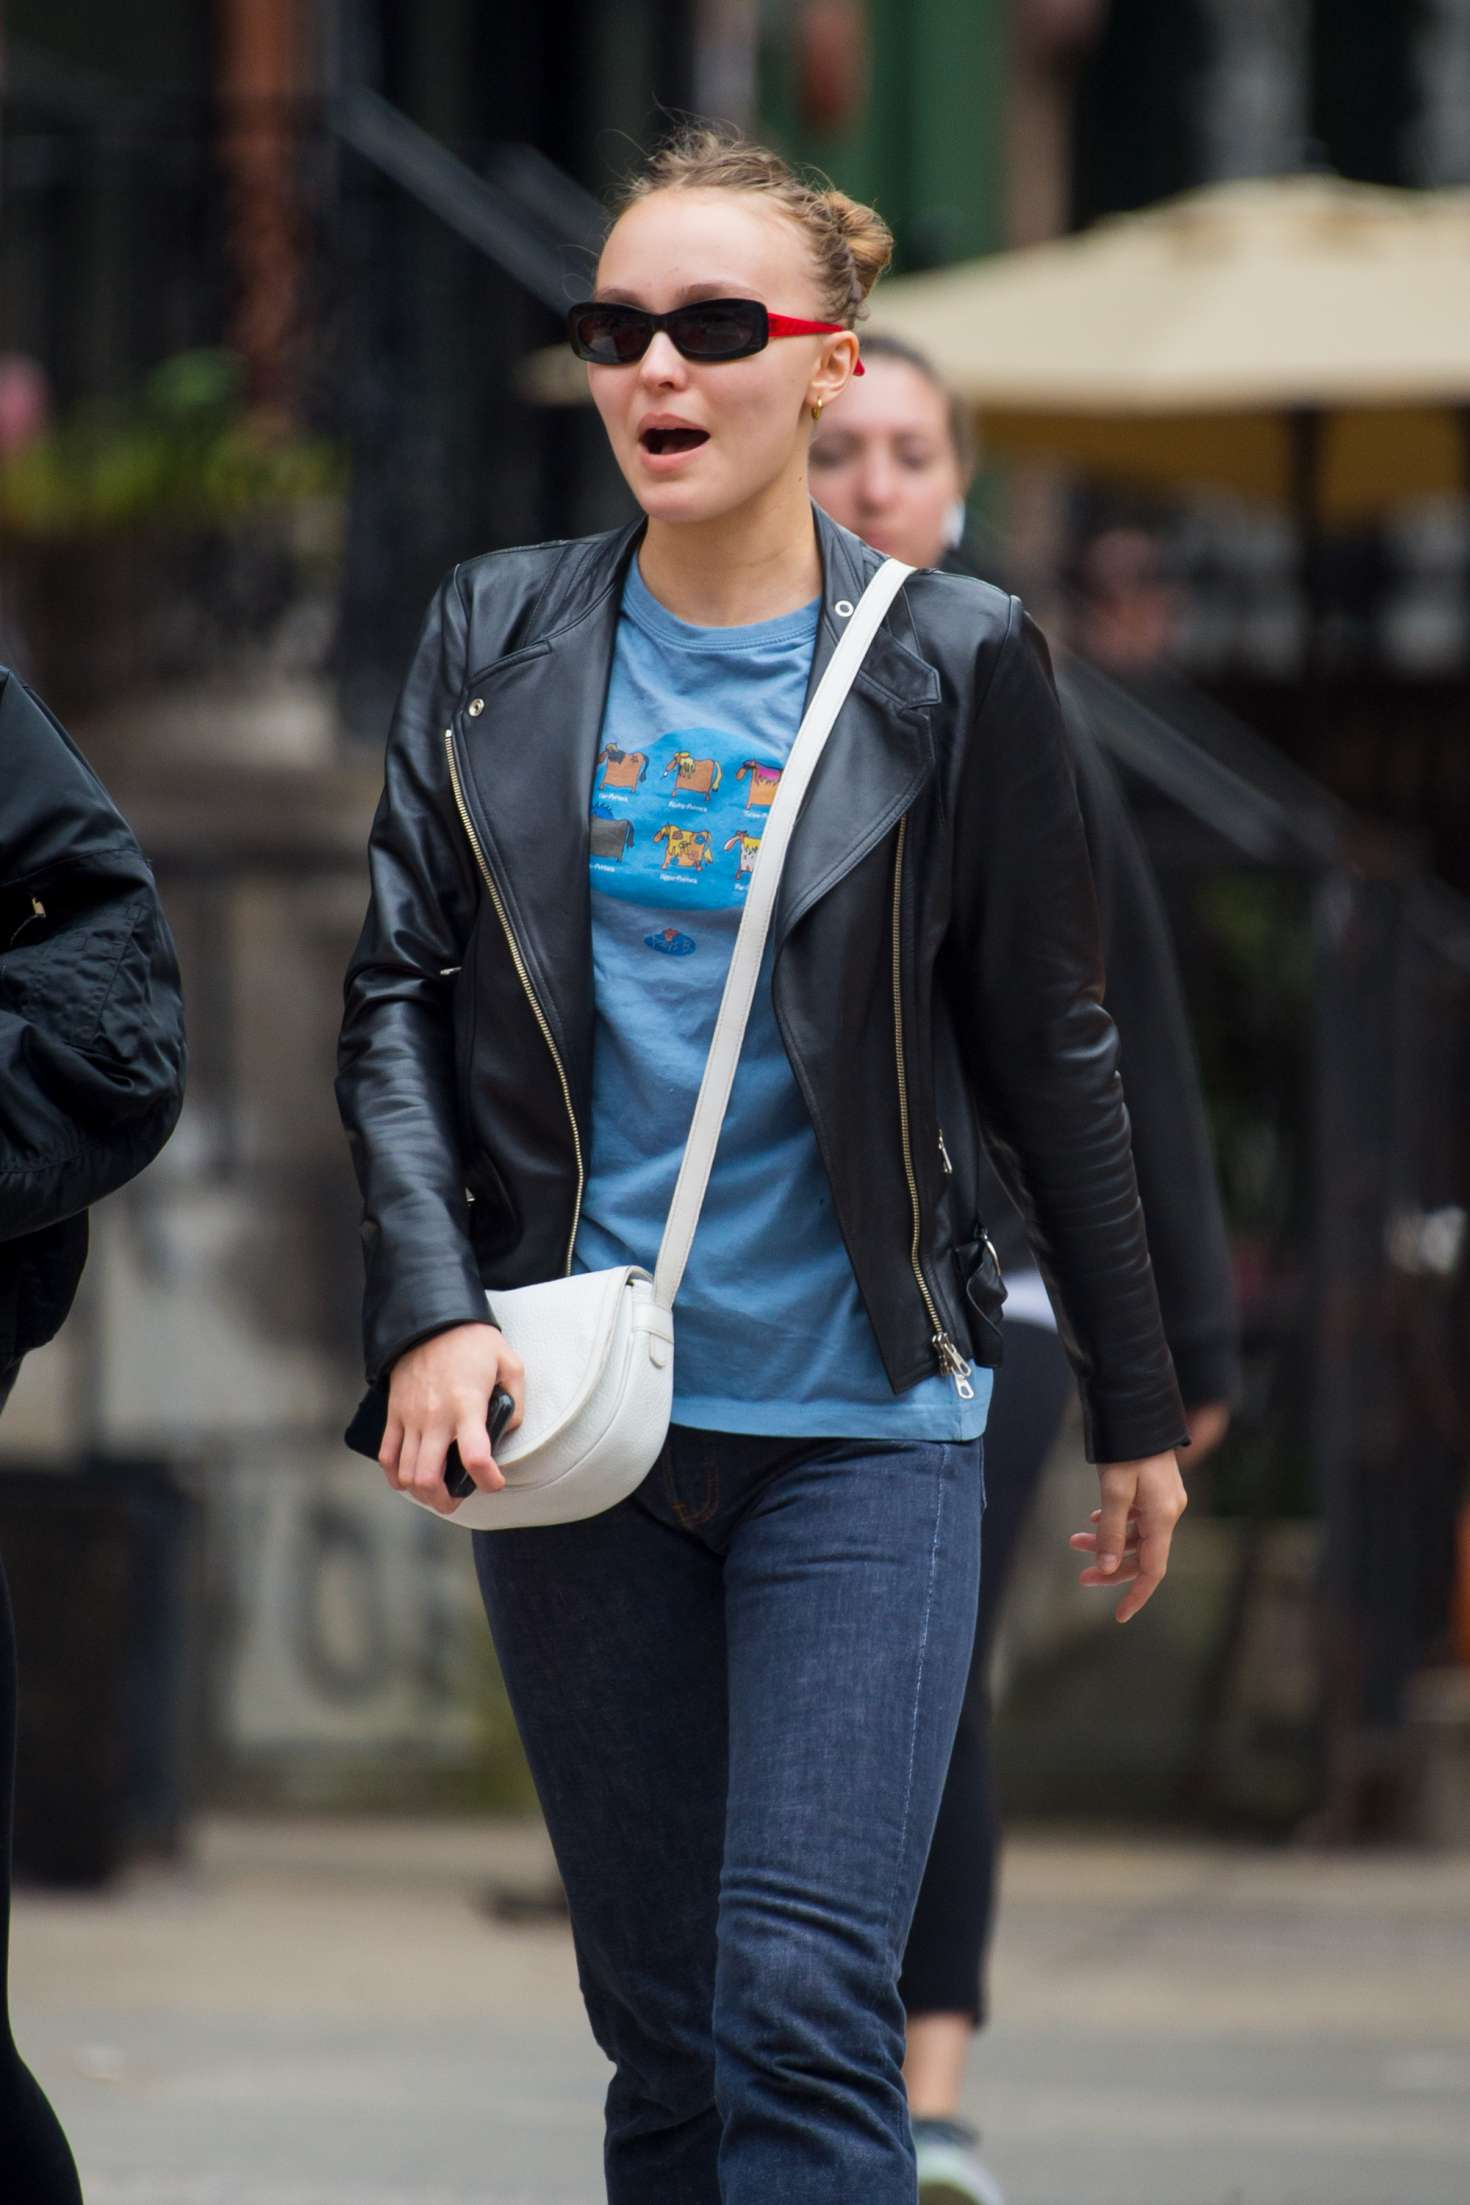 Lily Rose Depp In Leather Jacket – Out In New York